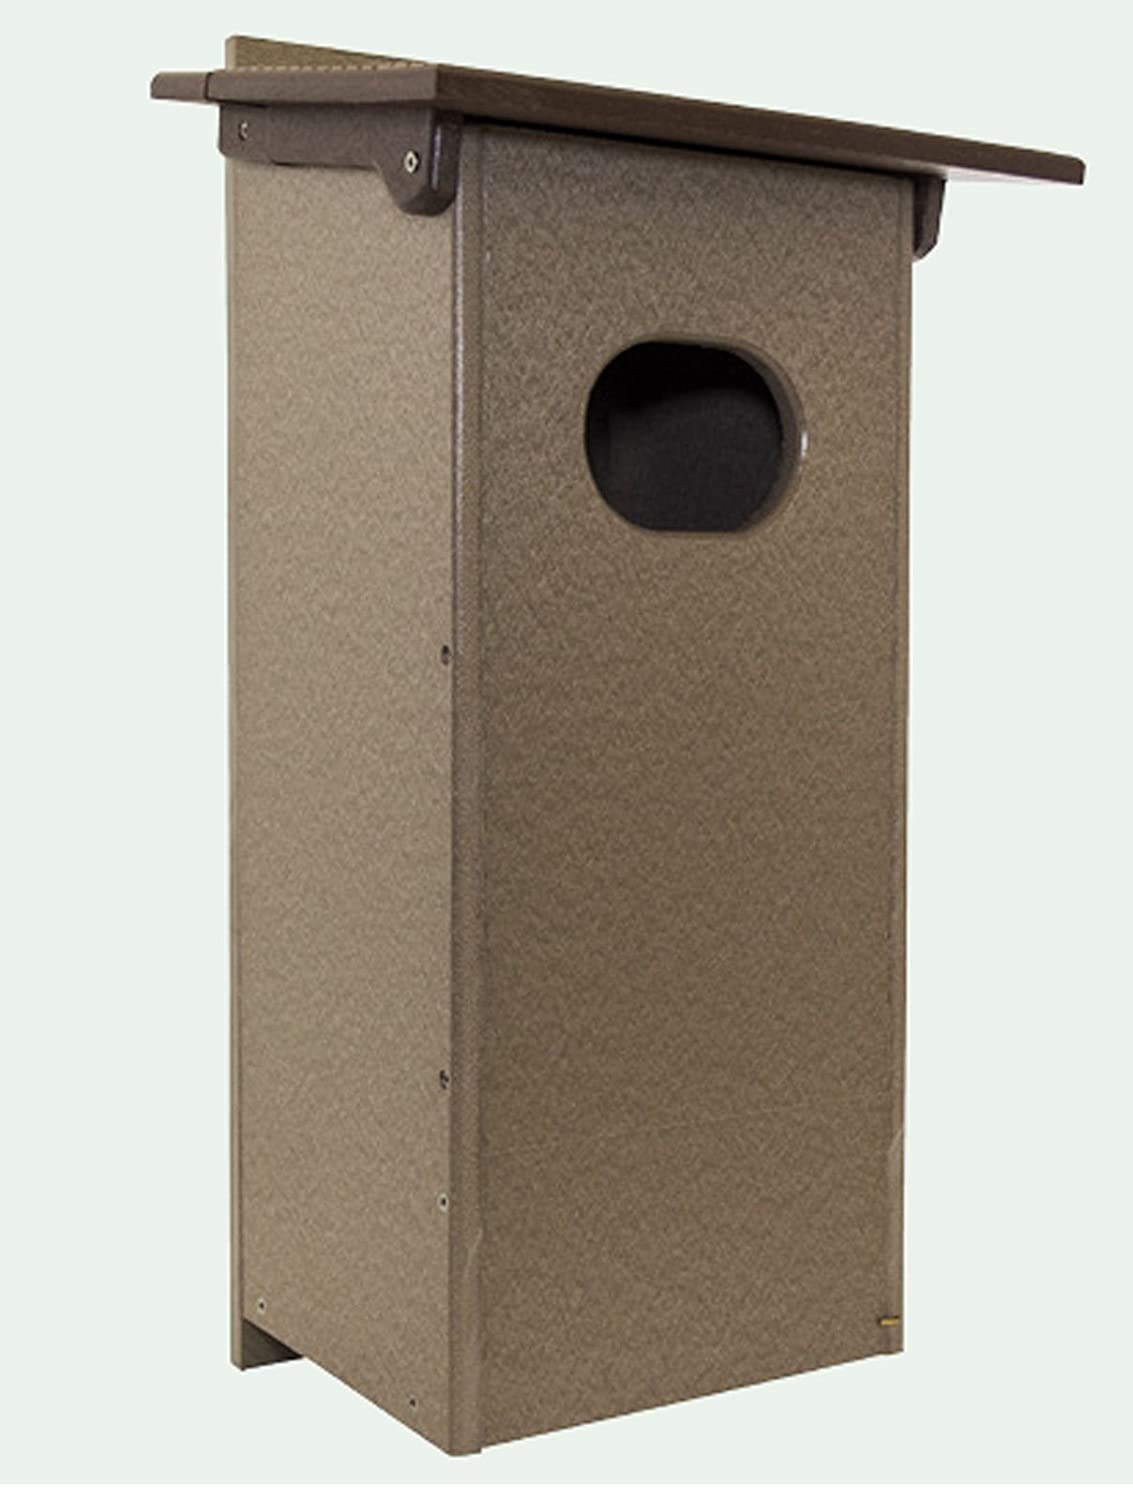 WOOD DUCK BOX Amish built Weatherproof Recycled Poly